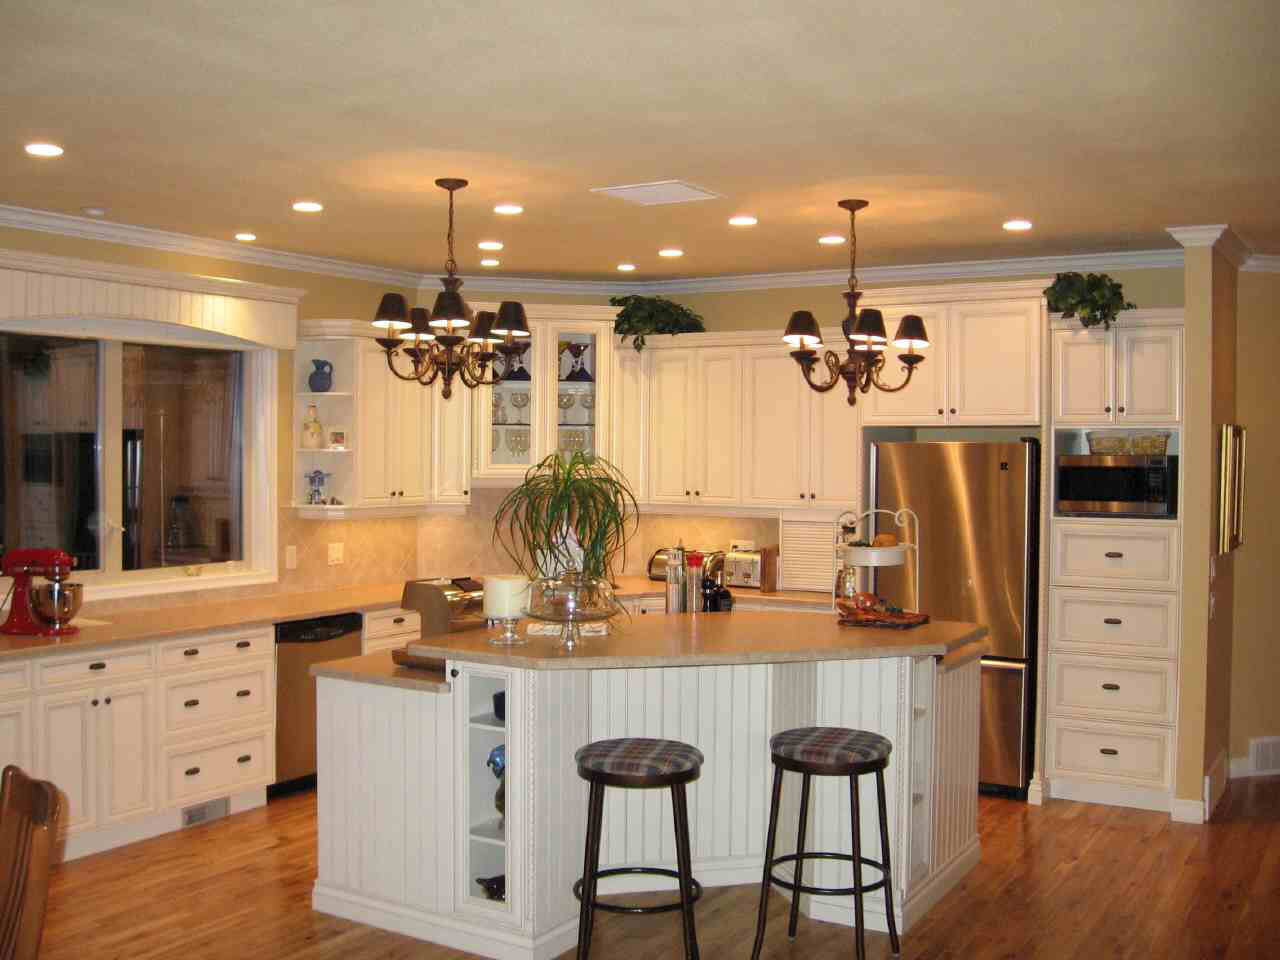 Kitchen room small kitchen designs Kitchen design for small kitchen ideas